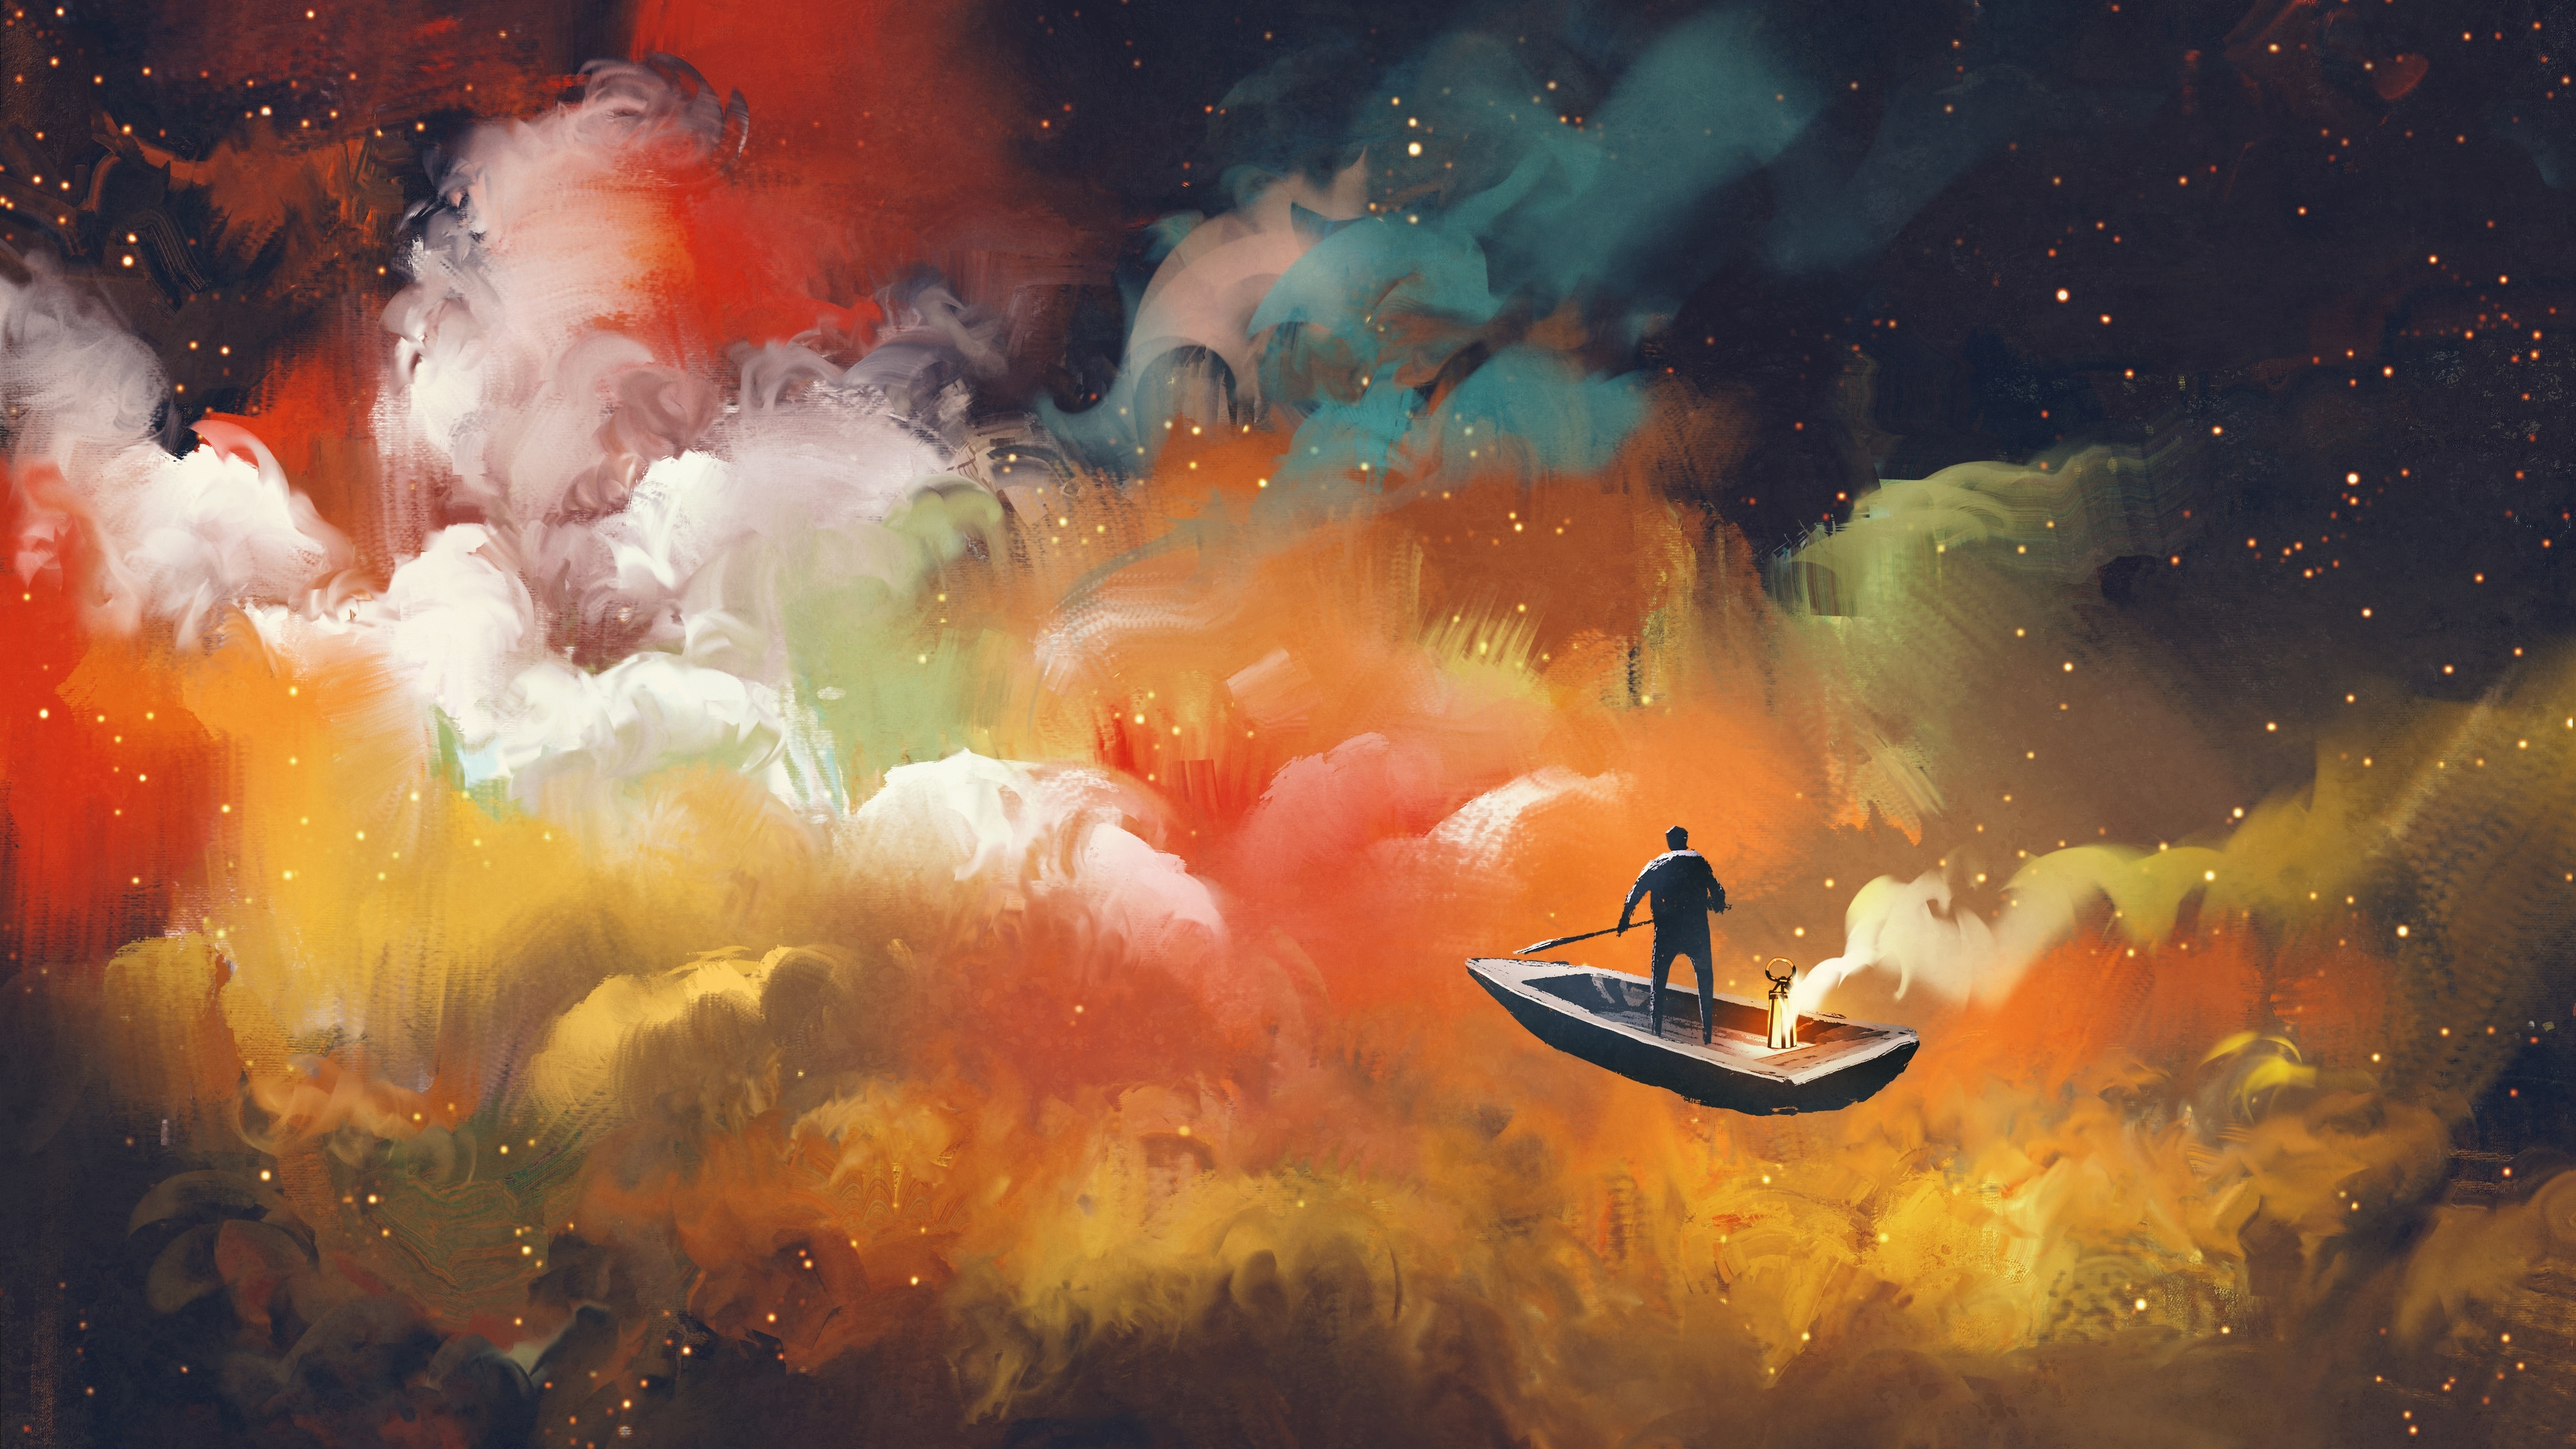 artistic cloud boat outer space floating 4k 1540754256 - Artistic Cloud Boat Outer Space Floating 4k - hd-wallpapers, digital art wallpapers, cloud wallpapers, boat wallpapers, artwork wallpapers, artist wallpapers, 5k wallpapers, 4k-wallpapers